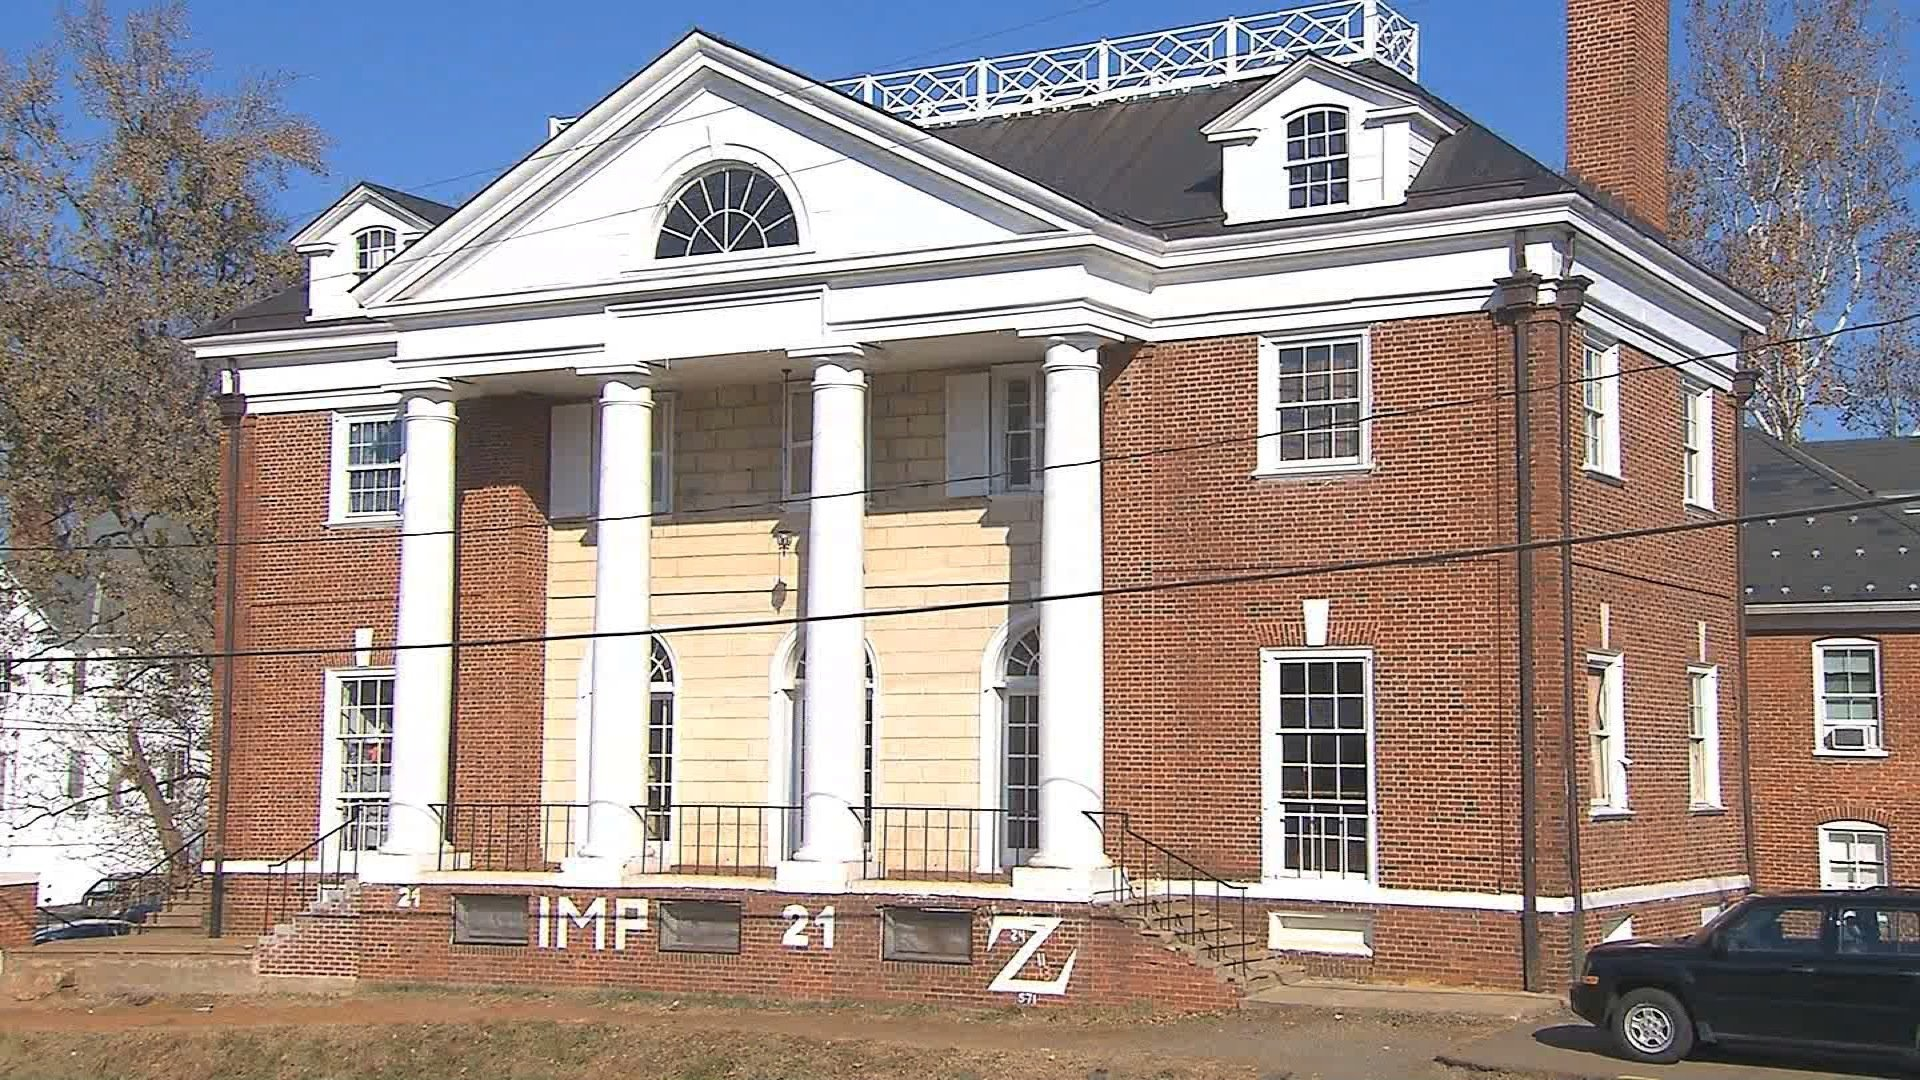 The University of Virginia suspended all fraternities and associated parties following a Rolling Stone magazine article that described a student's account of being gang raped.